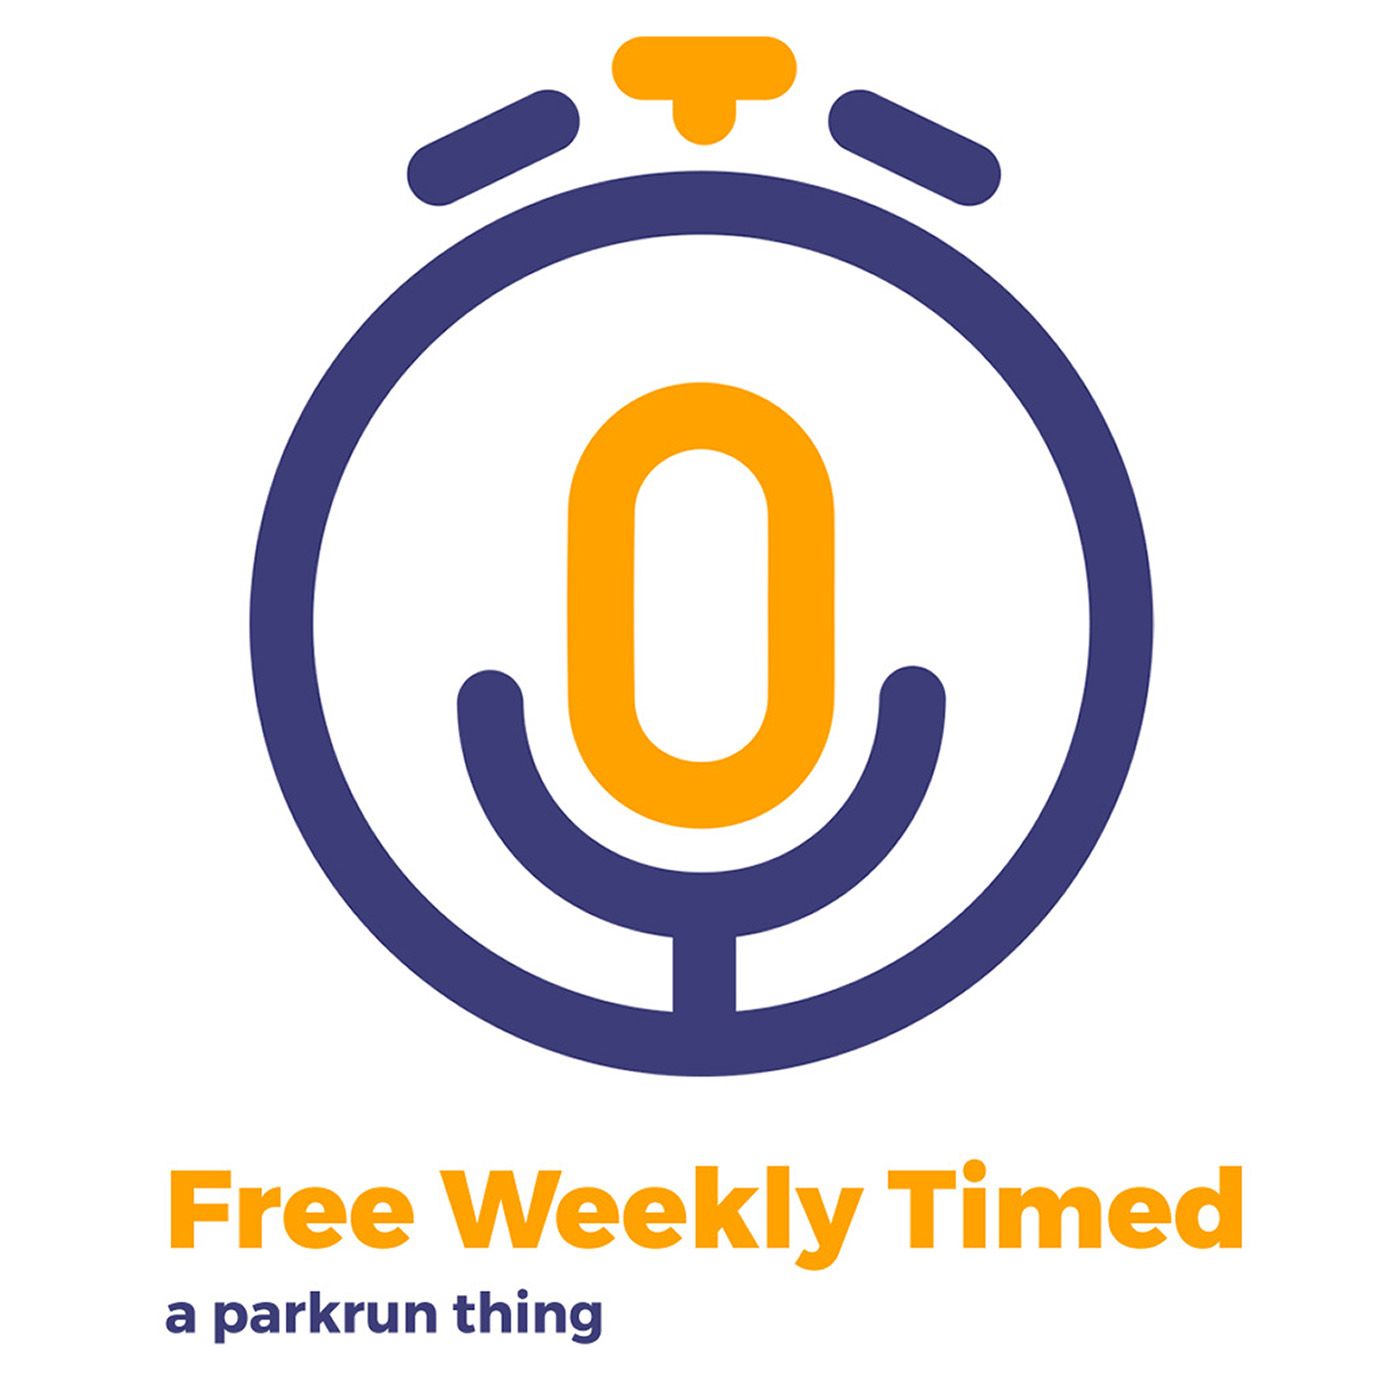 Free Weekly Times is always fast-pace and full of interesting stories. But this episode included one of the most inspirational that I'd ever heard